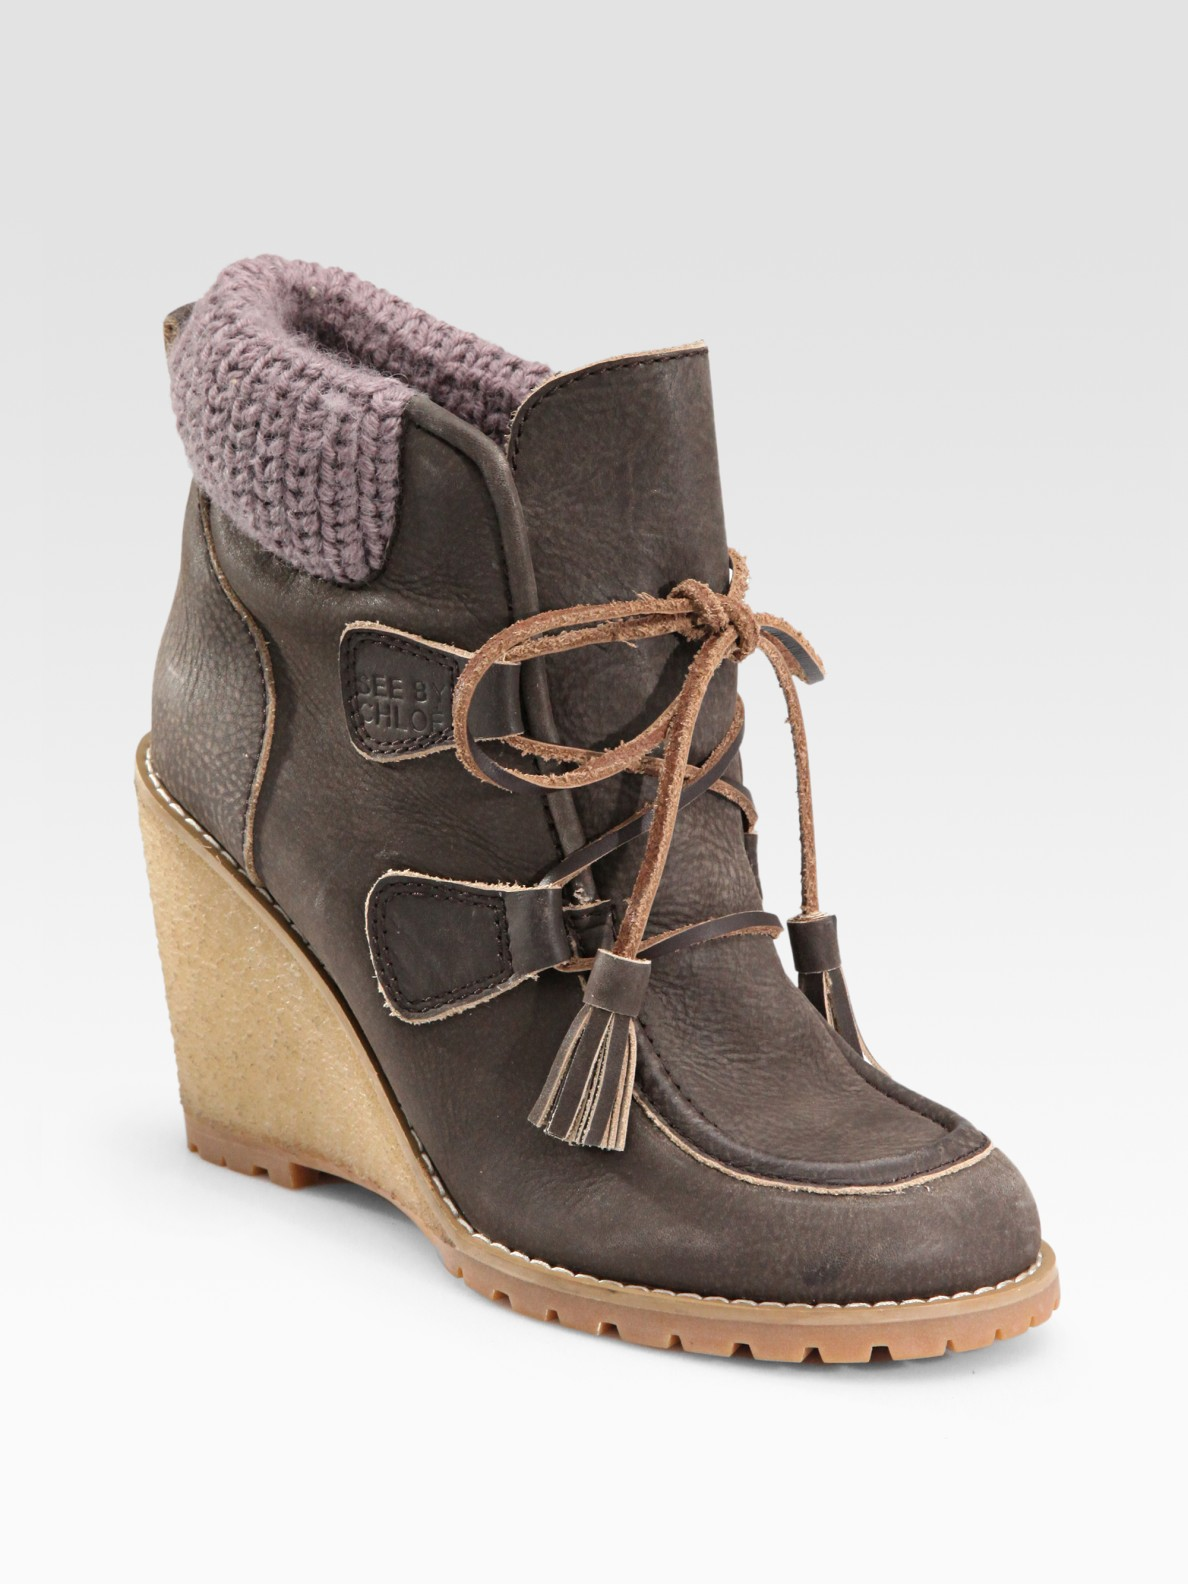 See By Chlo 233 Leather Moccasin Wedge Ankle Boots In Brown